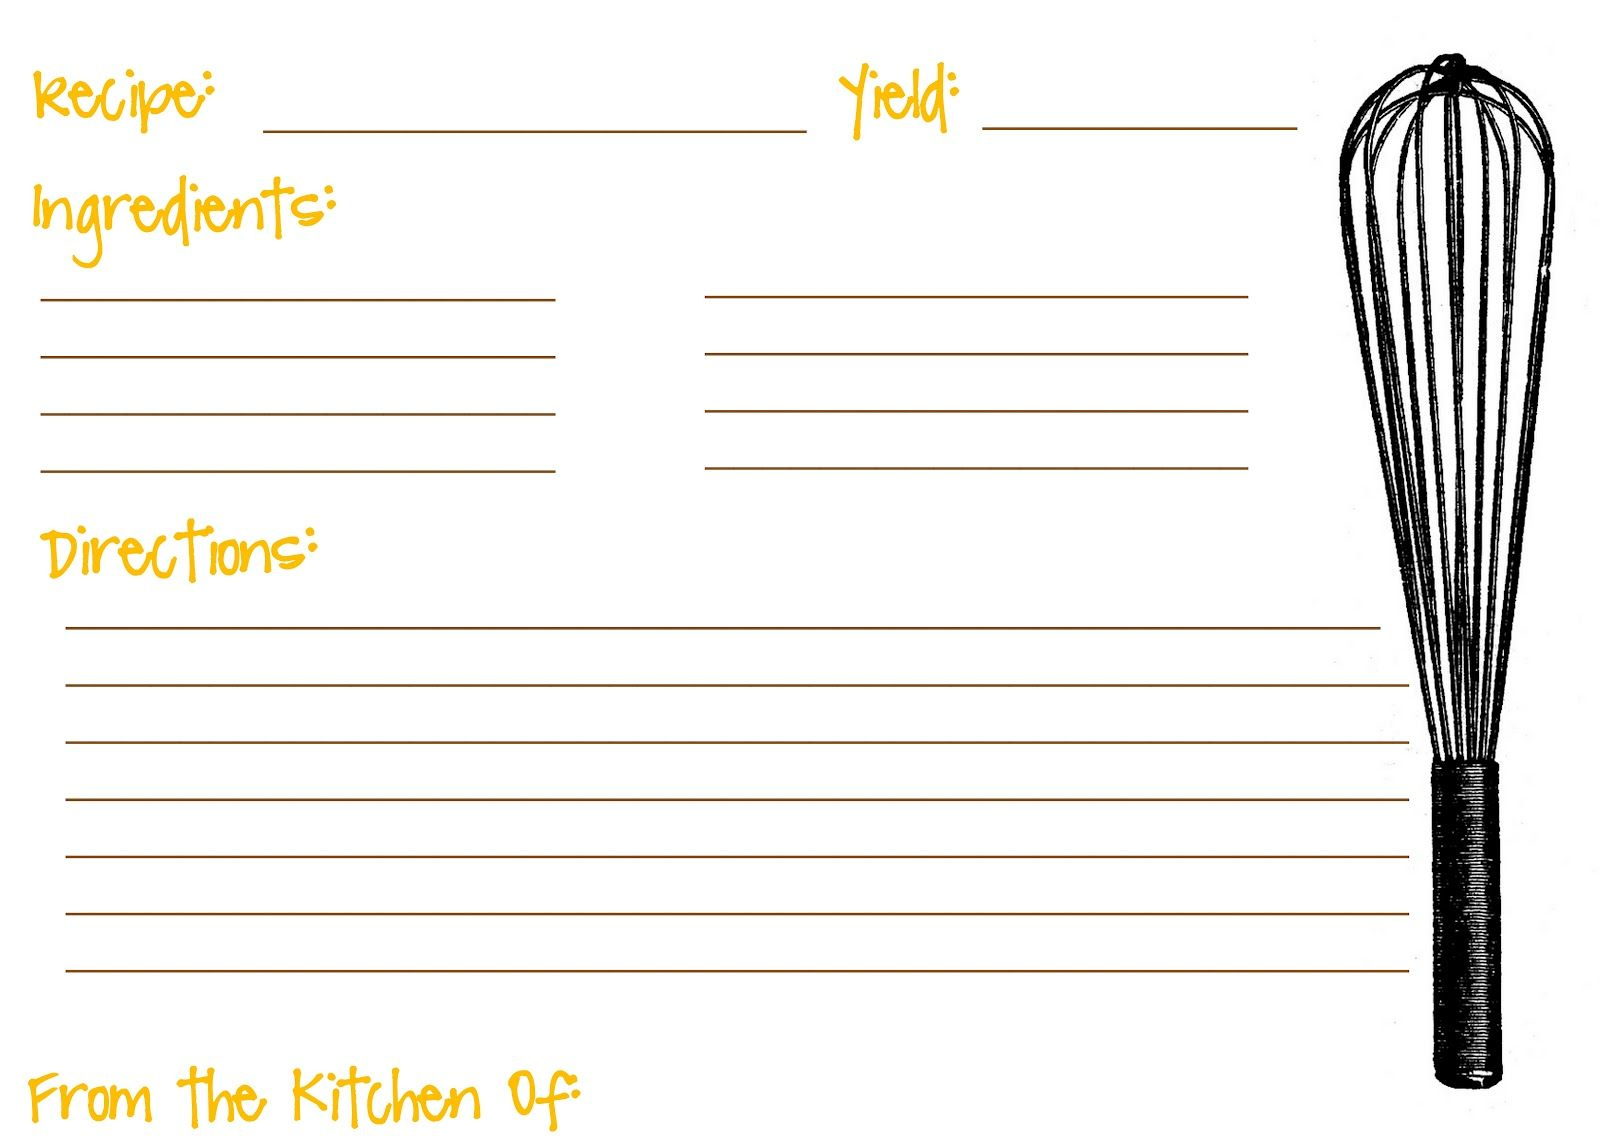 Scooter cakes free printable recipe cards recipe cards for Free editable recipe card templates for microsoft word